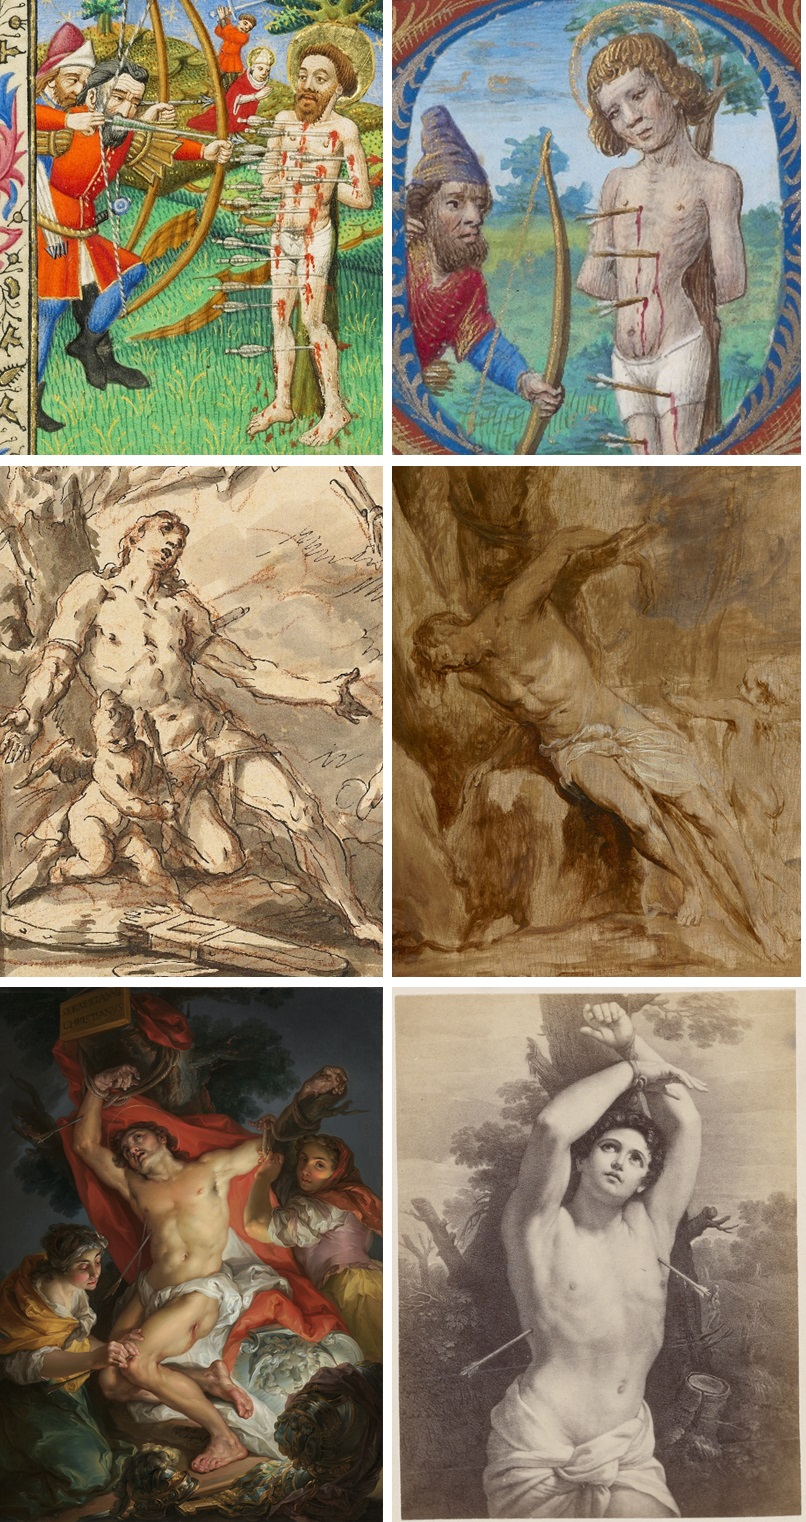 Images of Saint Sebastian in the Getty Collection: Master of Sir John Fastolf, about 1430-40 (Ms. 5, fol. 36v); Georges Trubert, about 1480-90 (Ms. 48, fol. 173v); Gaspare Diziani, about 1718 (2004.83); Anthony van Dyck, about 1630-32 (85.PB.31); Vicente López y Portaña, 1795-1800 (2000.47); Unknown British Photographer after Gudio Reni, about 1865-85 (84.XP.1411.62).